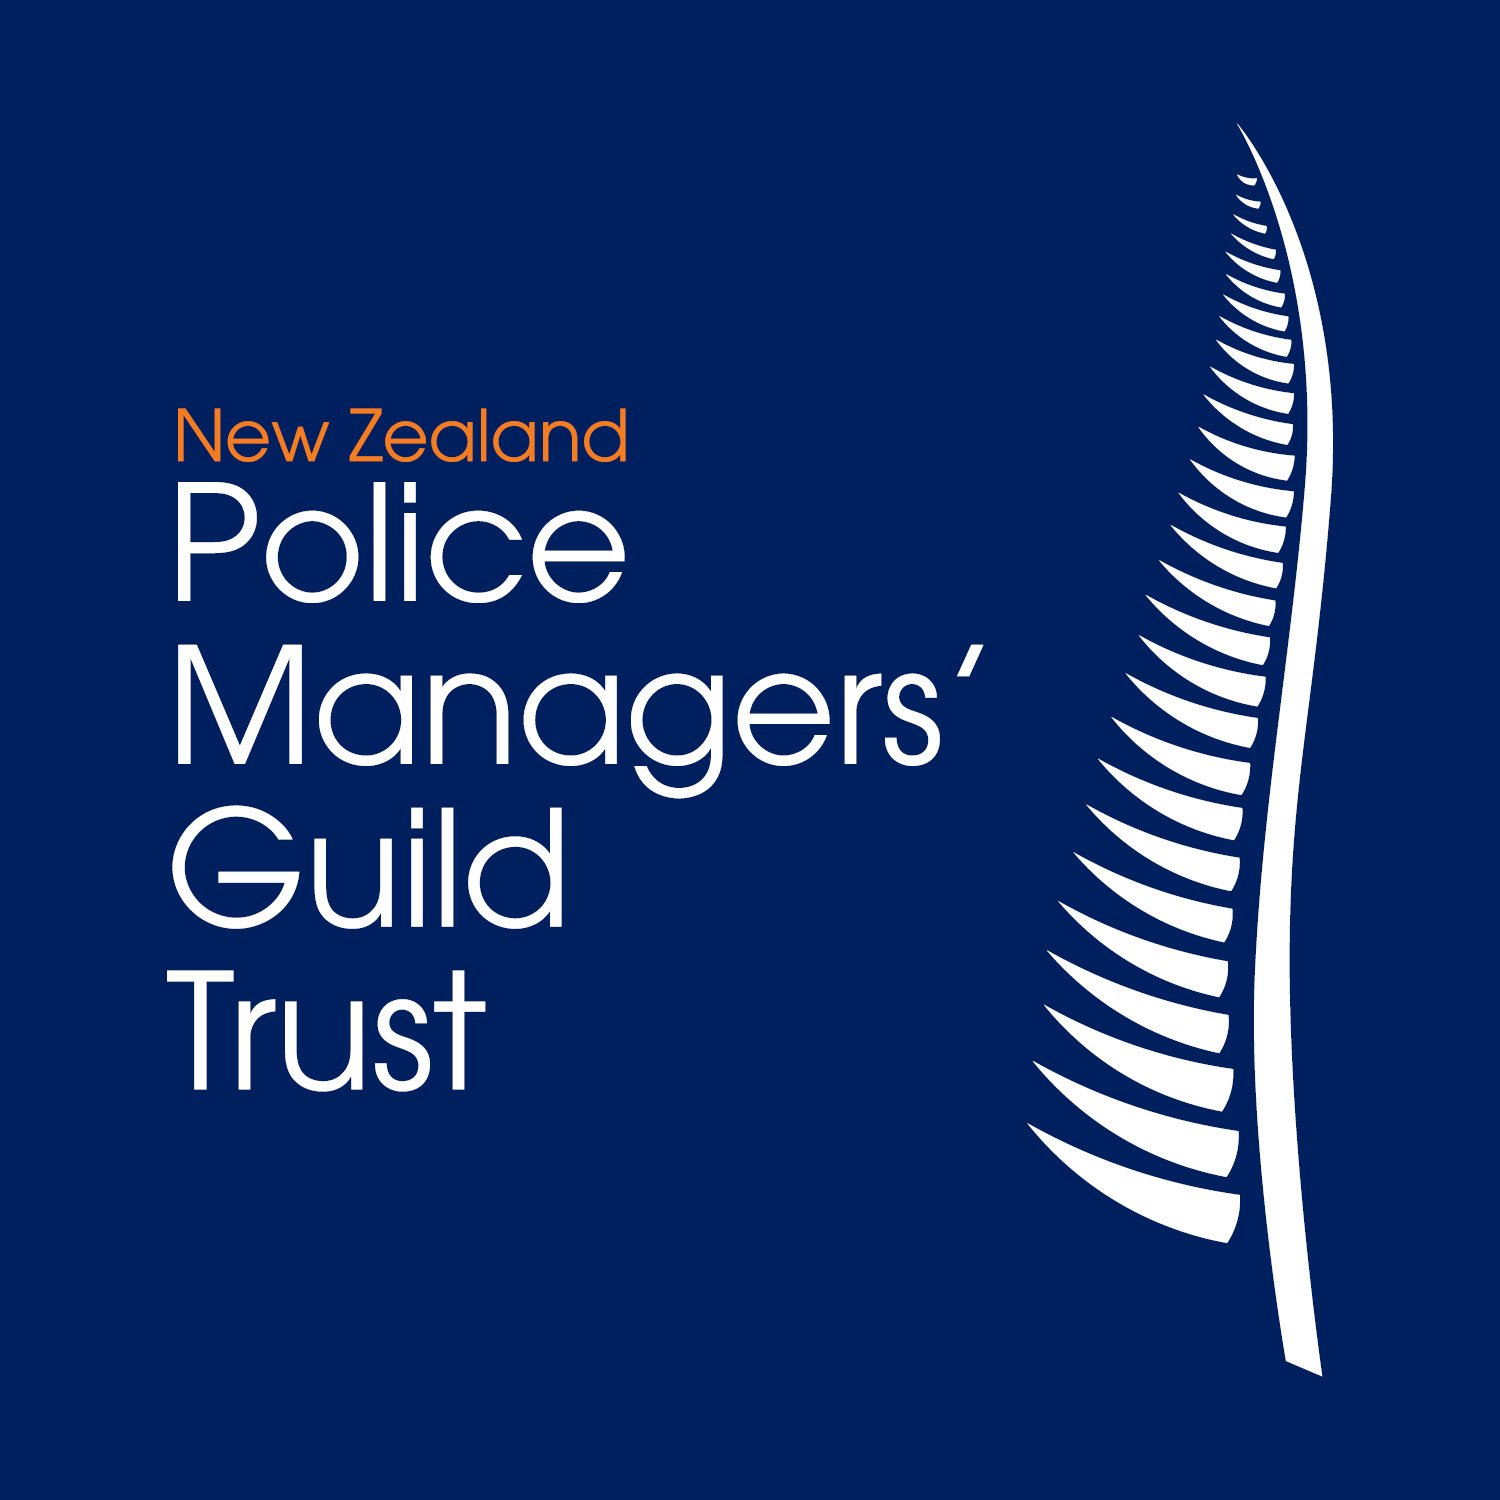 NZ Police Managers Guild Trust